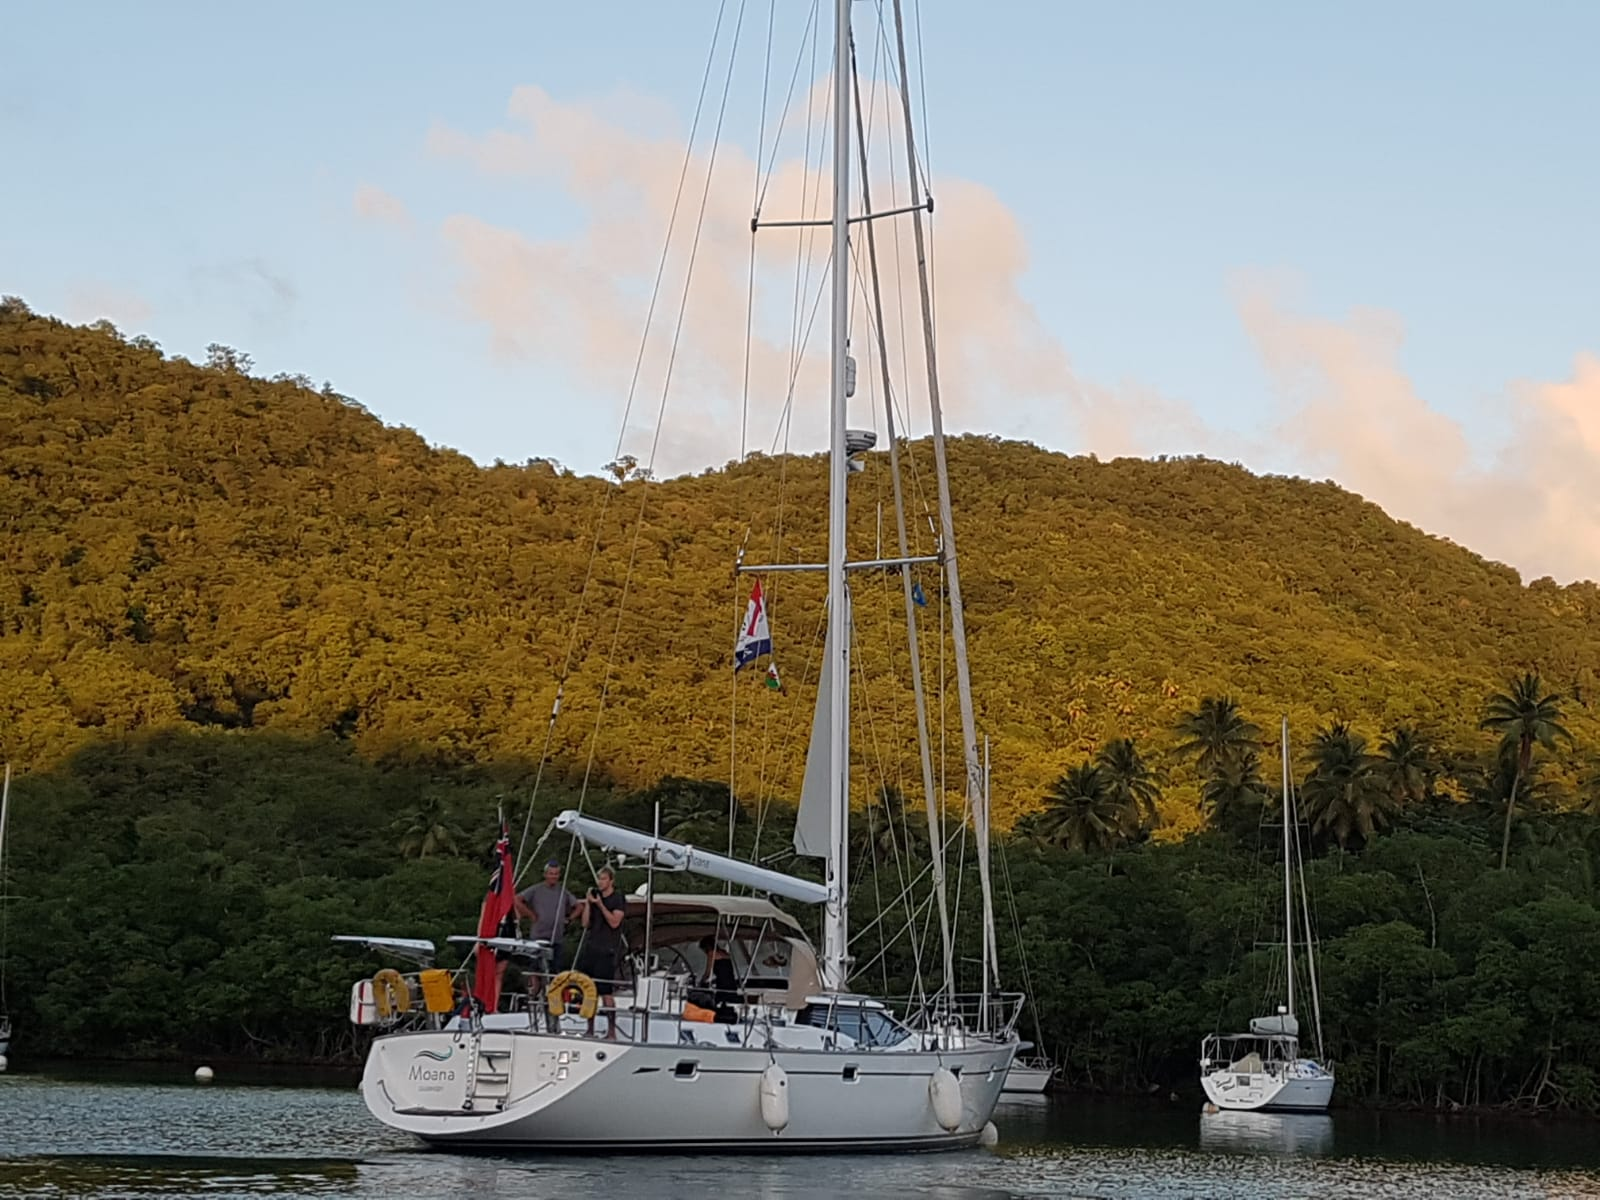 Settled in Marigot Bay